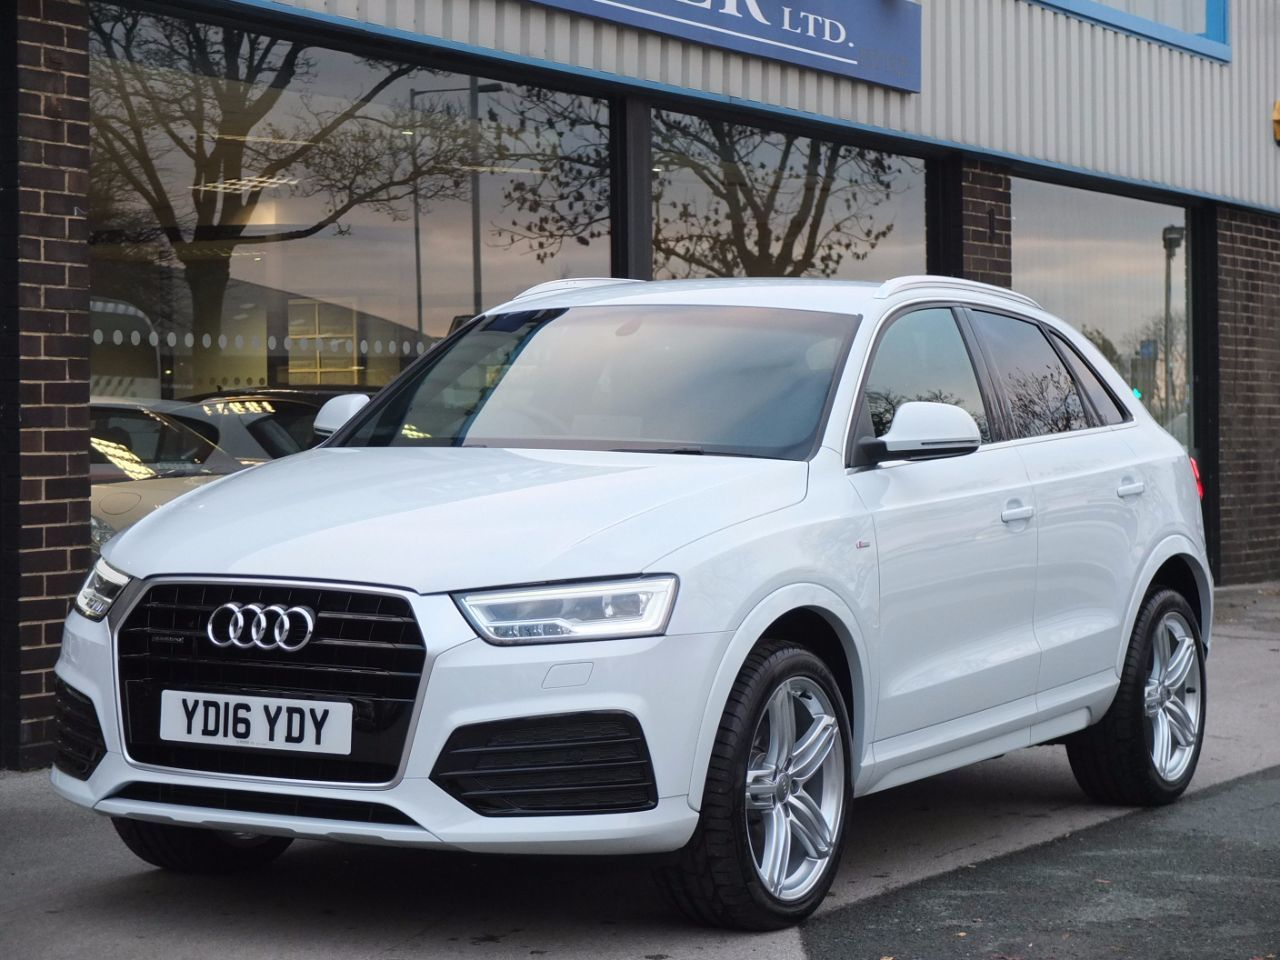 second hand audi q3 q3 2 0tdi quattro s line plus s tronic for sale in bradford west yorkshire. Black Bedroom Furniture Sets. Home Design Ideas